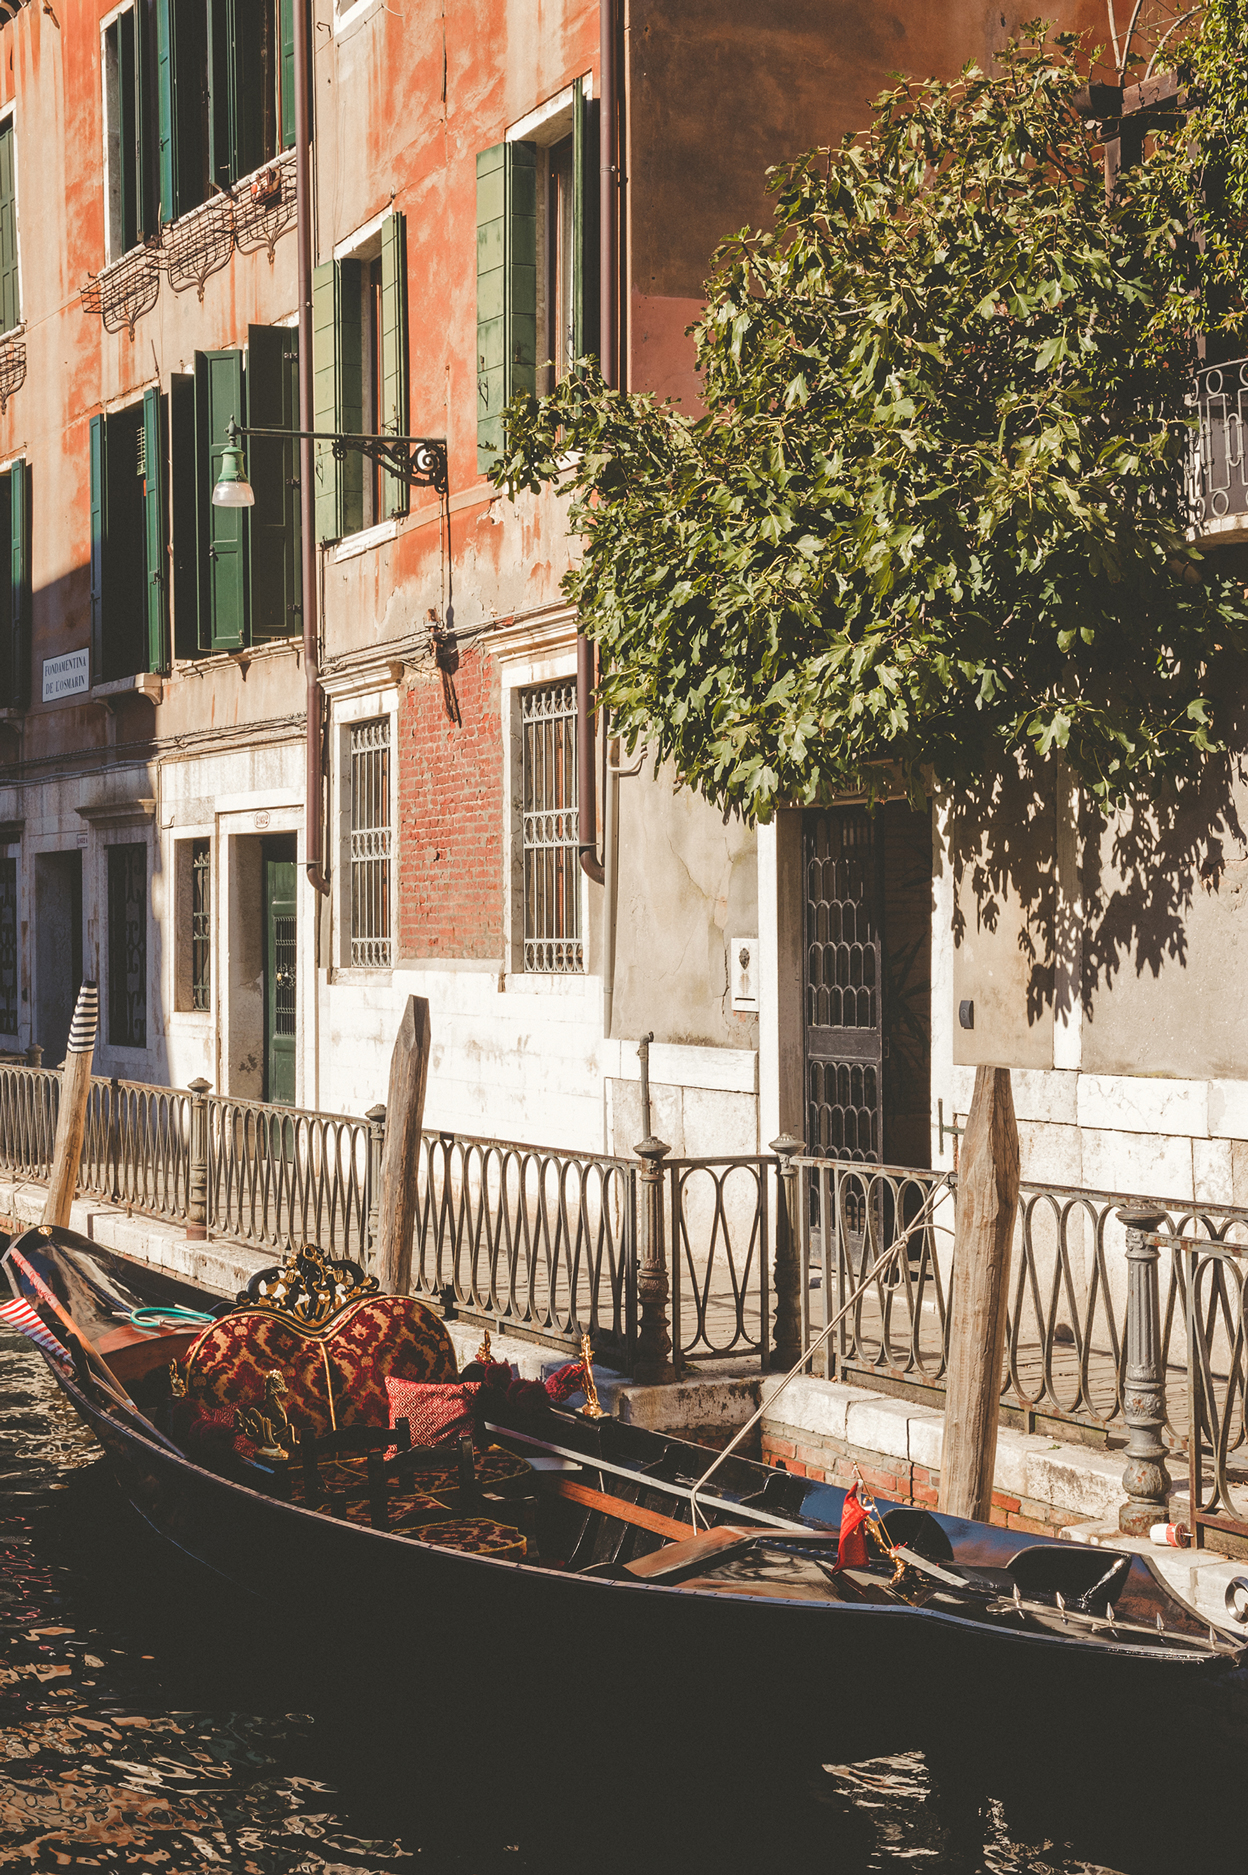 KC_Lifestyle_Photographer_OutdoorPhotography_Adventure_Photography_Venice_Italy16.jpg